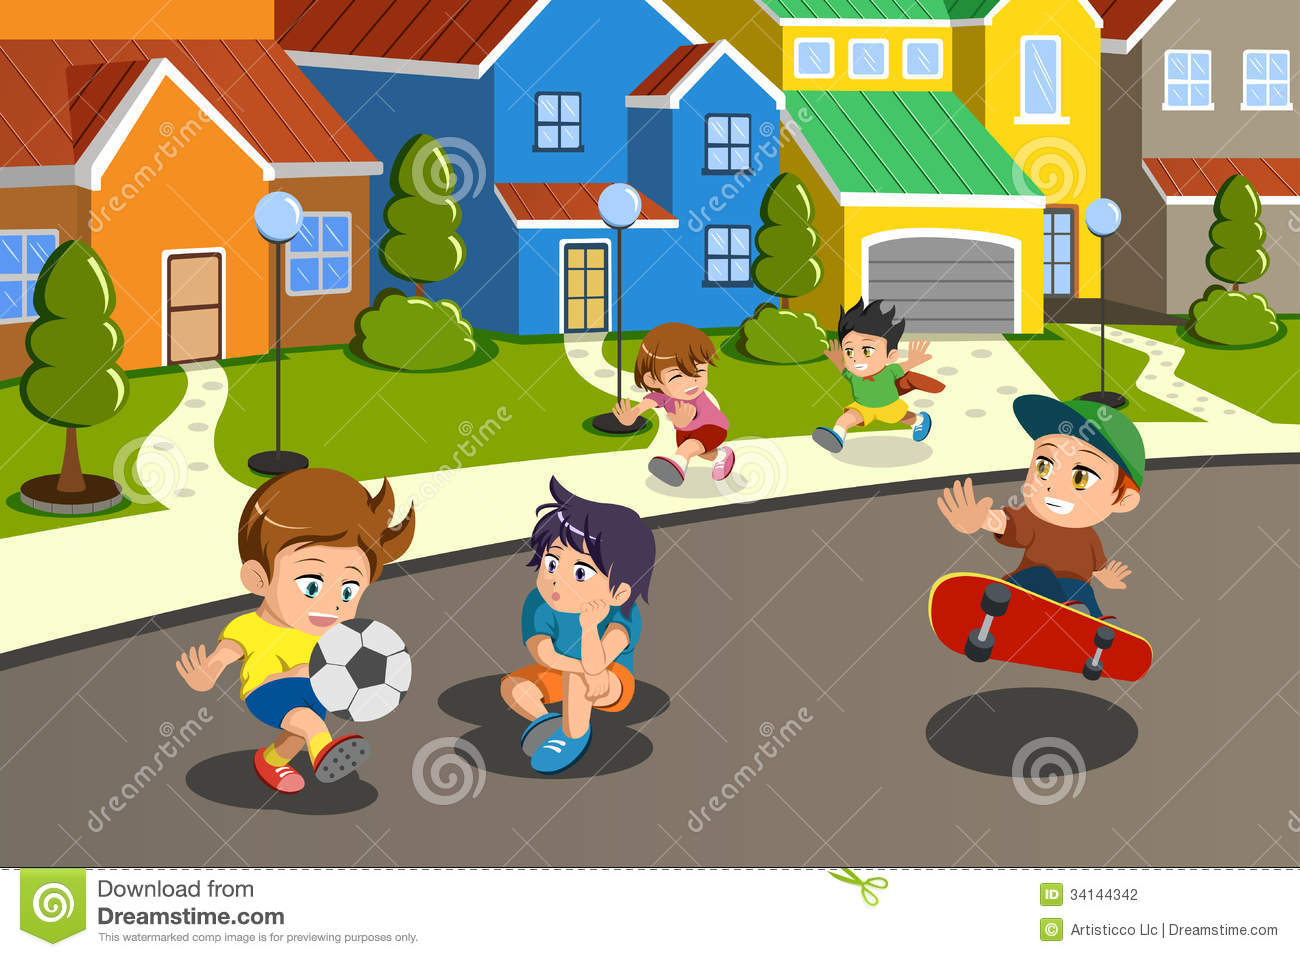 hight resolution of neighborhood street clip art stock illustrations 310 neighborhood street clip art stock illustrations vectors clipart dreamstime